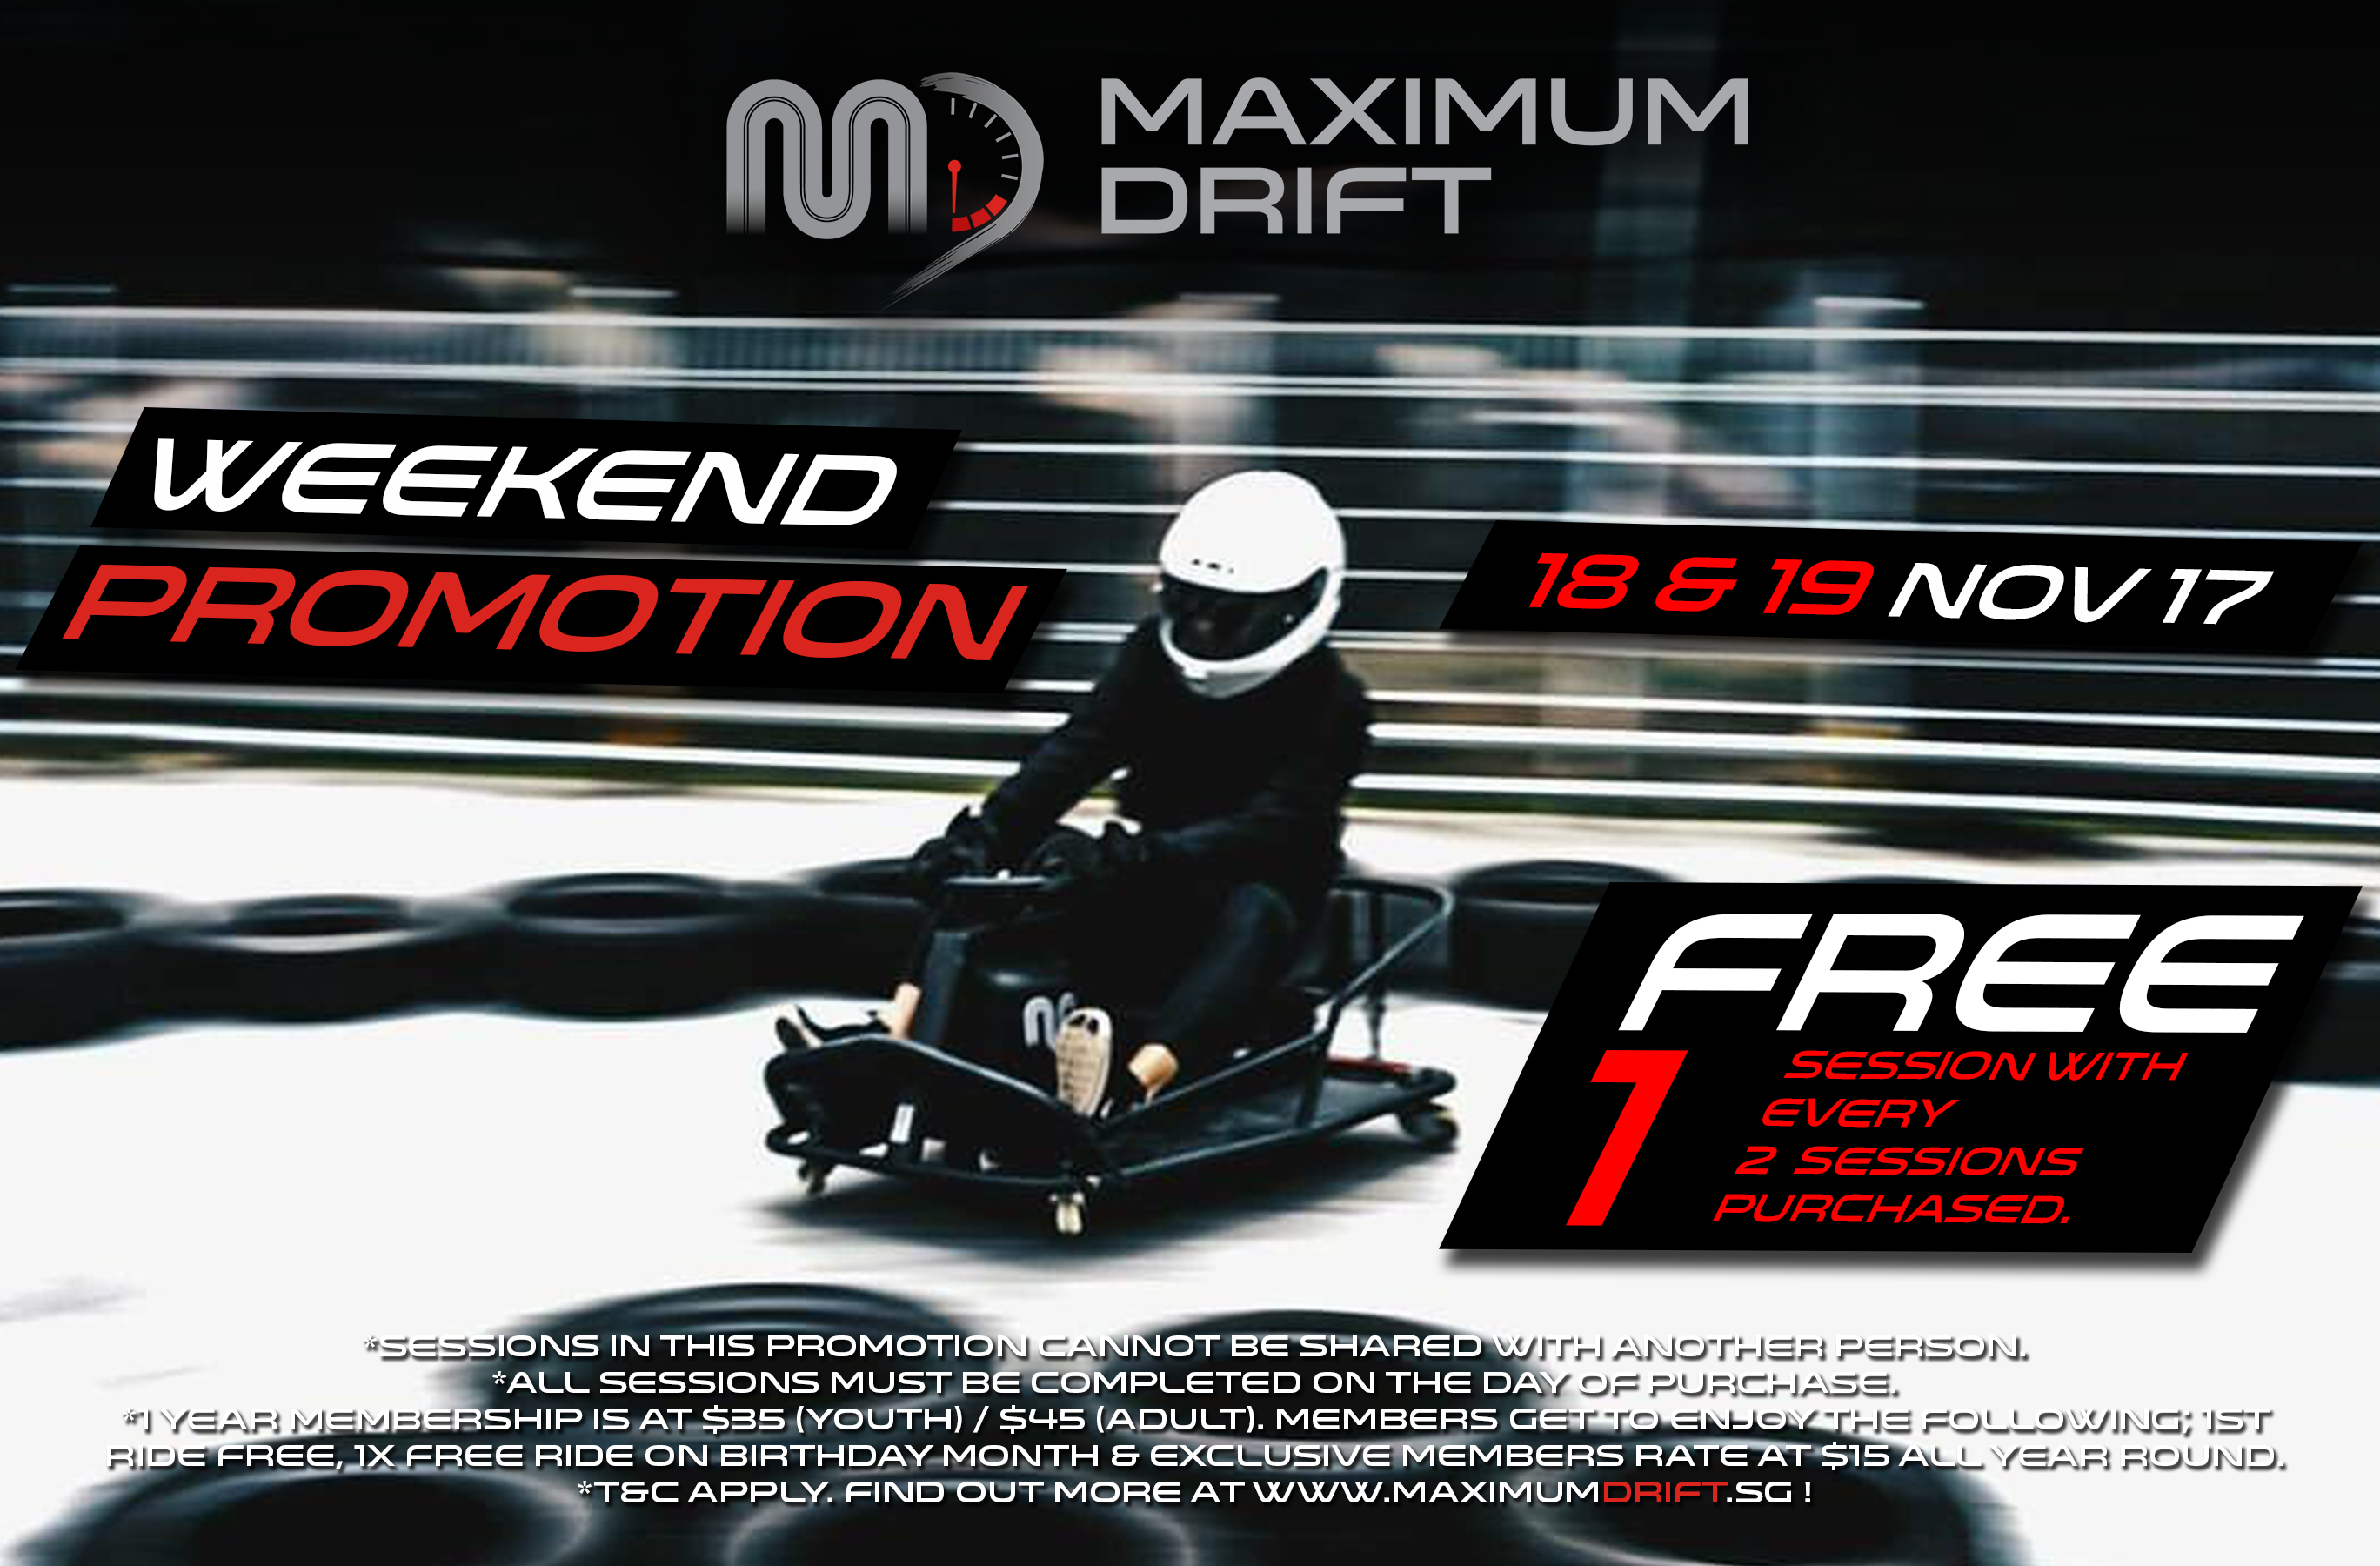 Maximum Drift November Weekend Promo